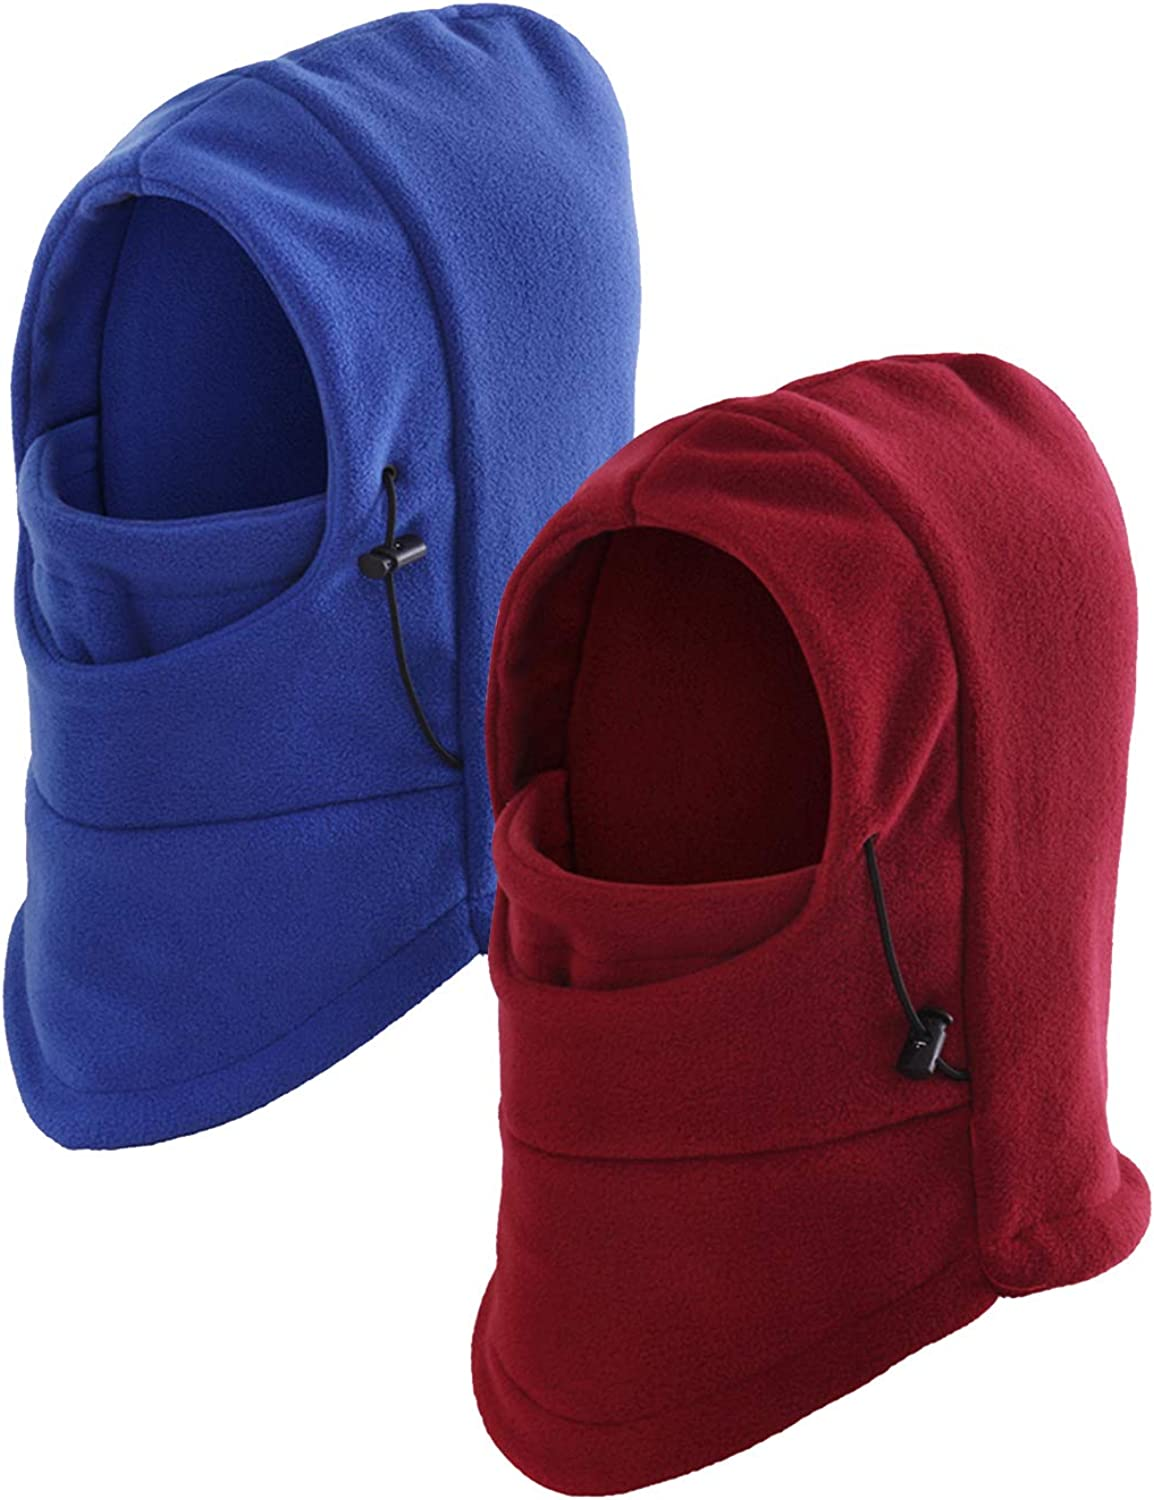 Your Choice Kids Balaclava Ski Cycling Cold for Weathe Face Mask NEW before selling Max 63% OFF ☆